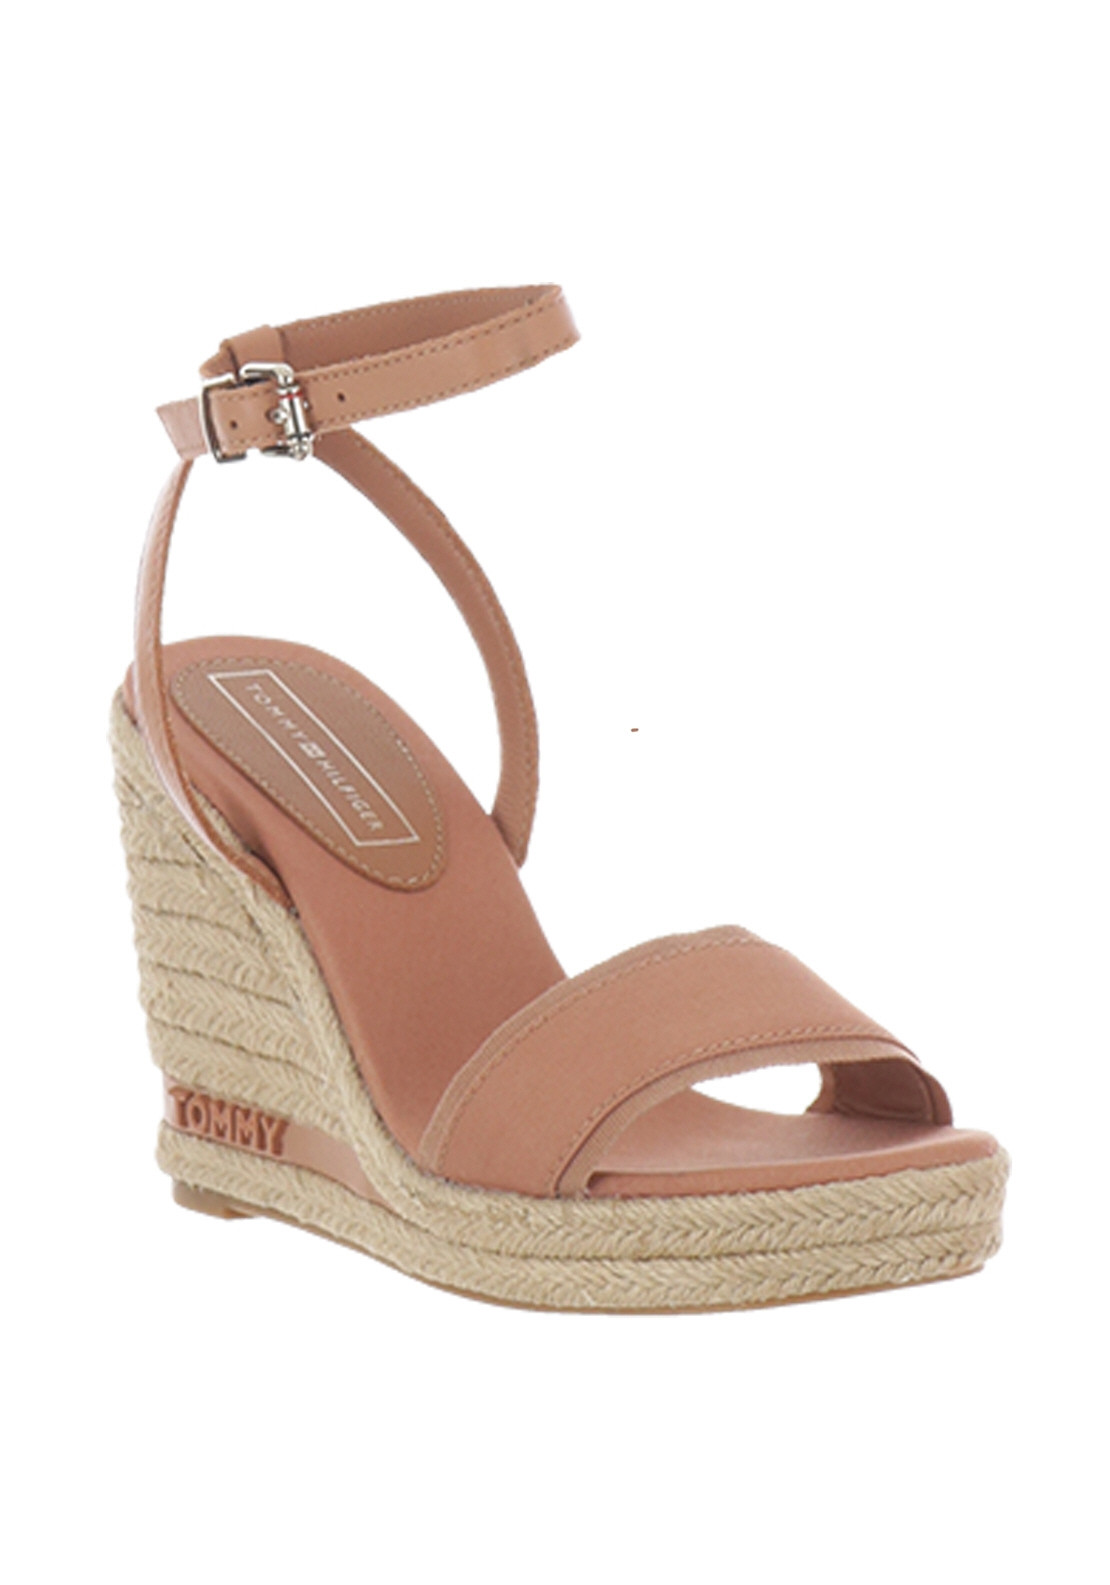 80c9246ae4c Tommy Hilfiger Womens Elena Wedge Sandals, Pink